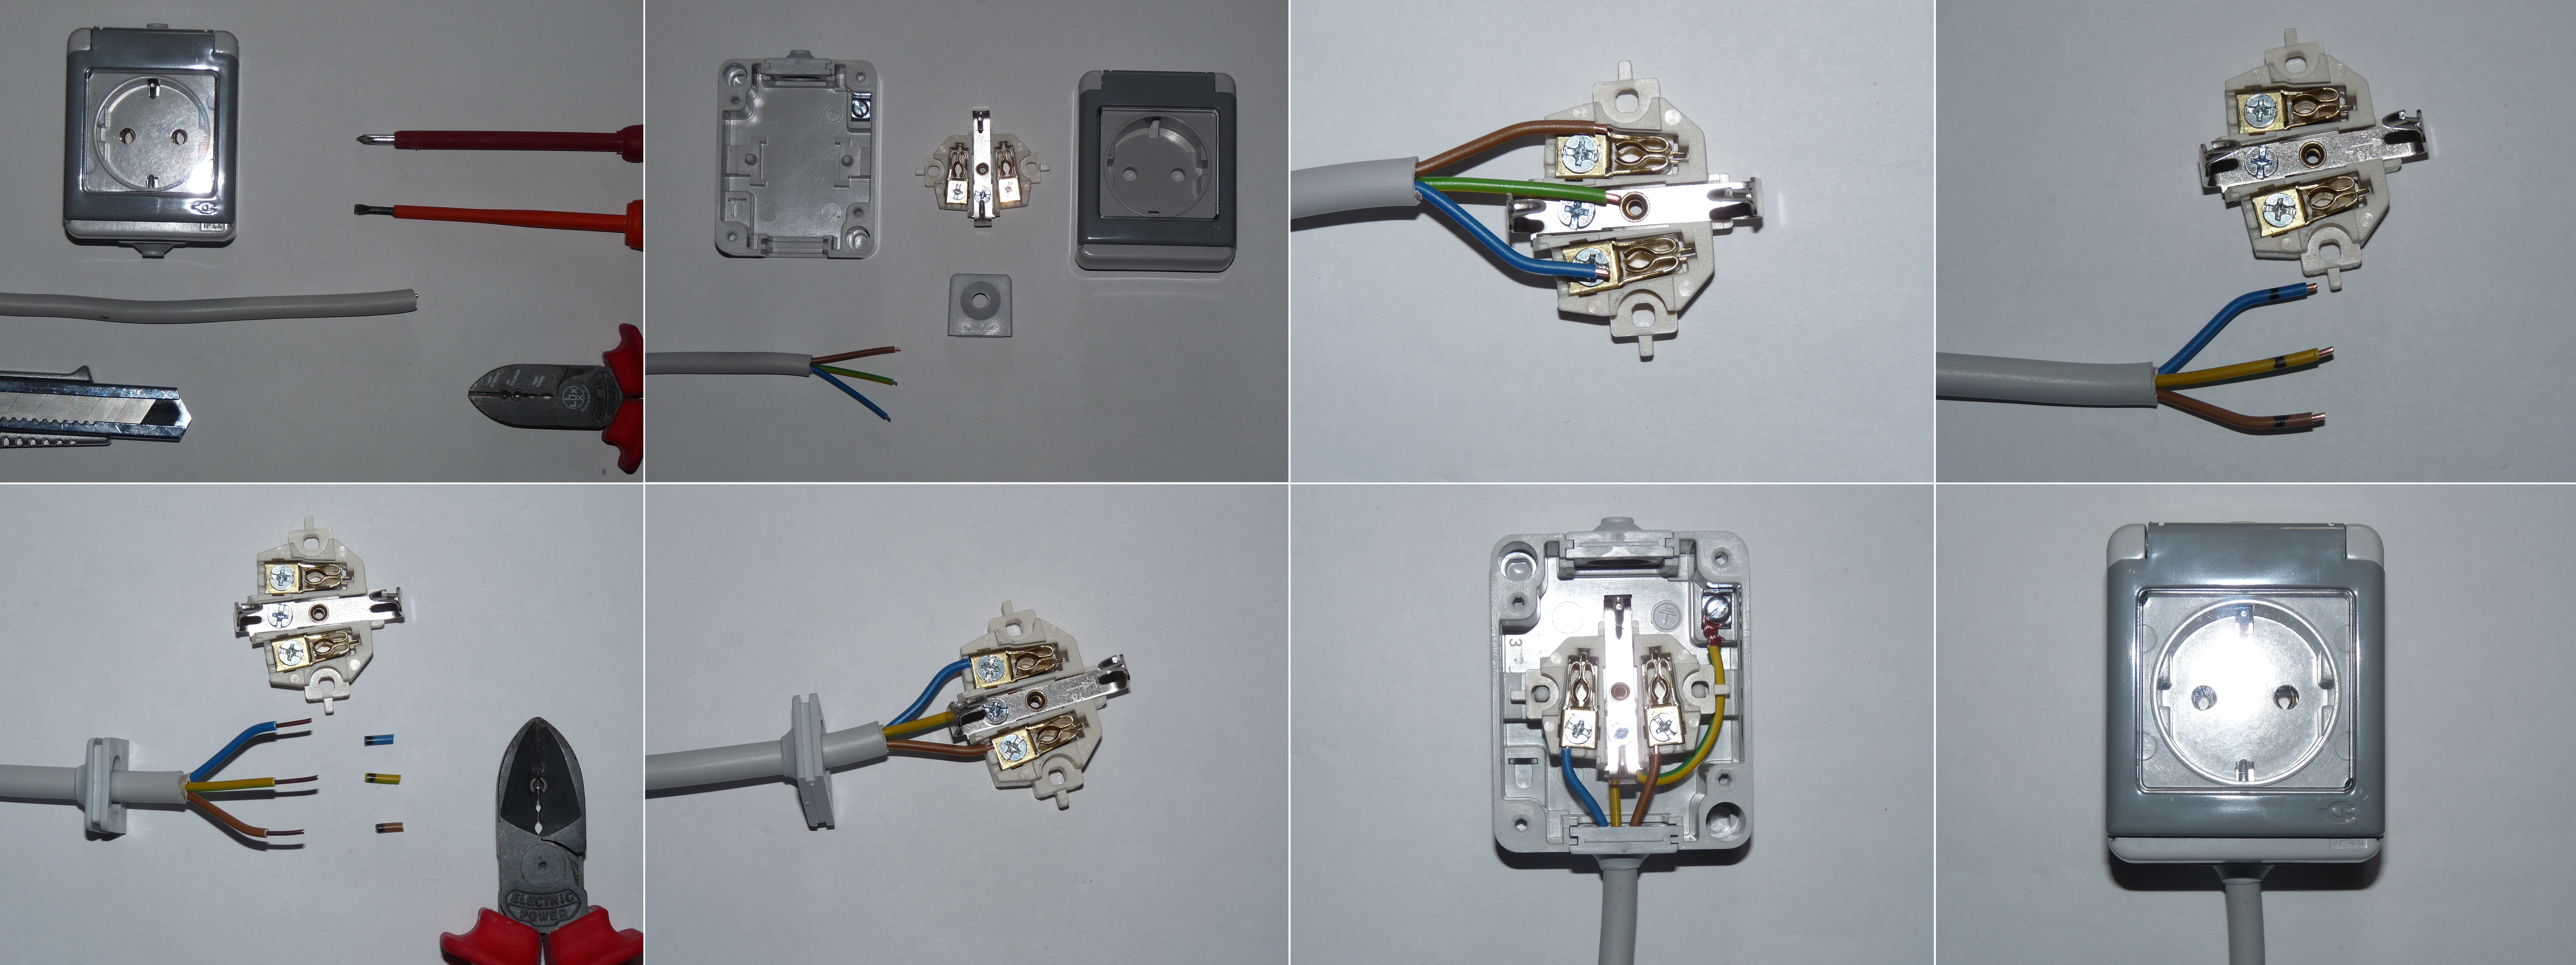 52888 Star  Pin Outs besides Illustration electro Hydraulic power steering  ehps ii zf together with Meter Data in addition 1000085203 further 43 621 NEUTRIK SPEAKON NLT4FX Female Cable. on wiring a plug